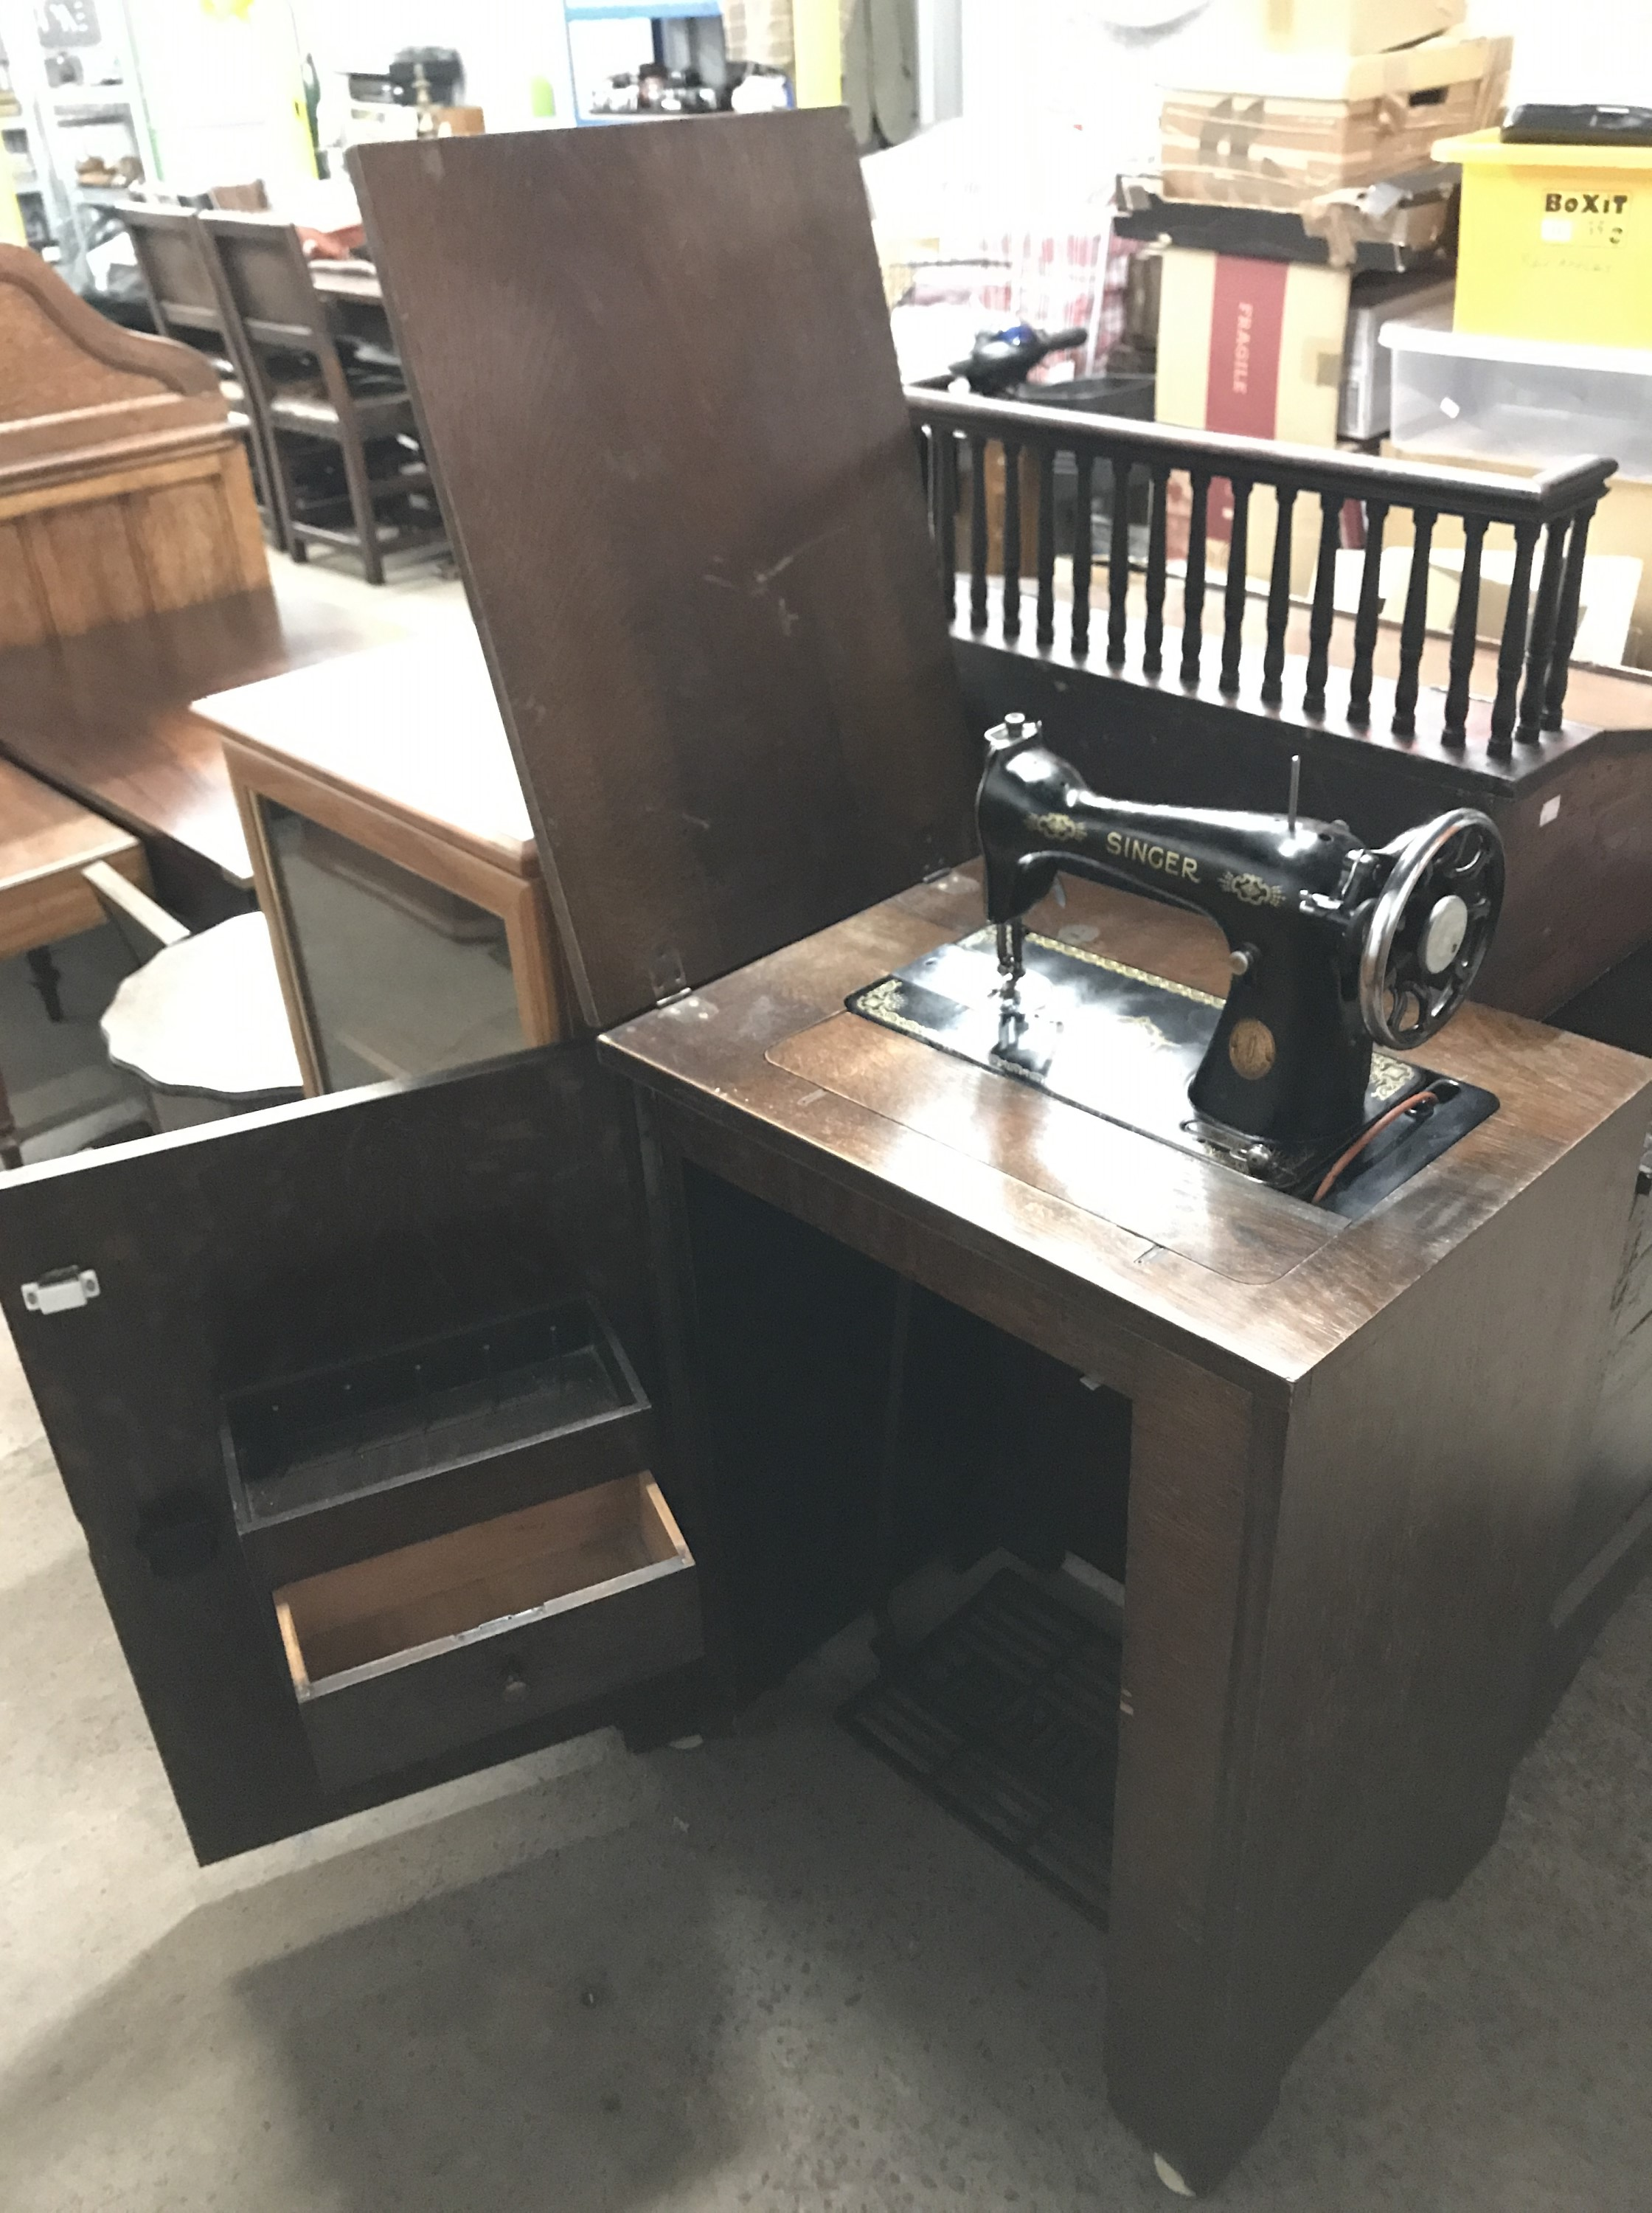 Lot 43 - An early 20th century Singer sewing machine in fitted cabinet